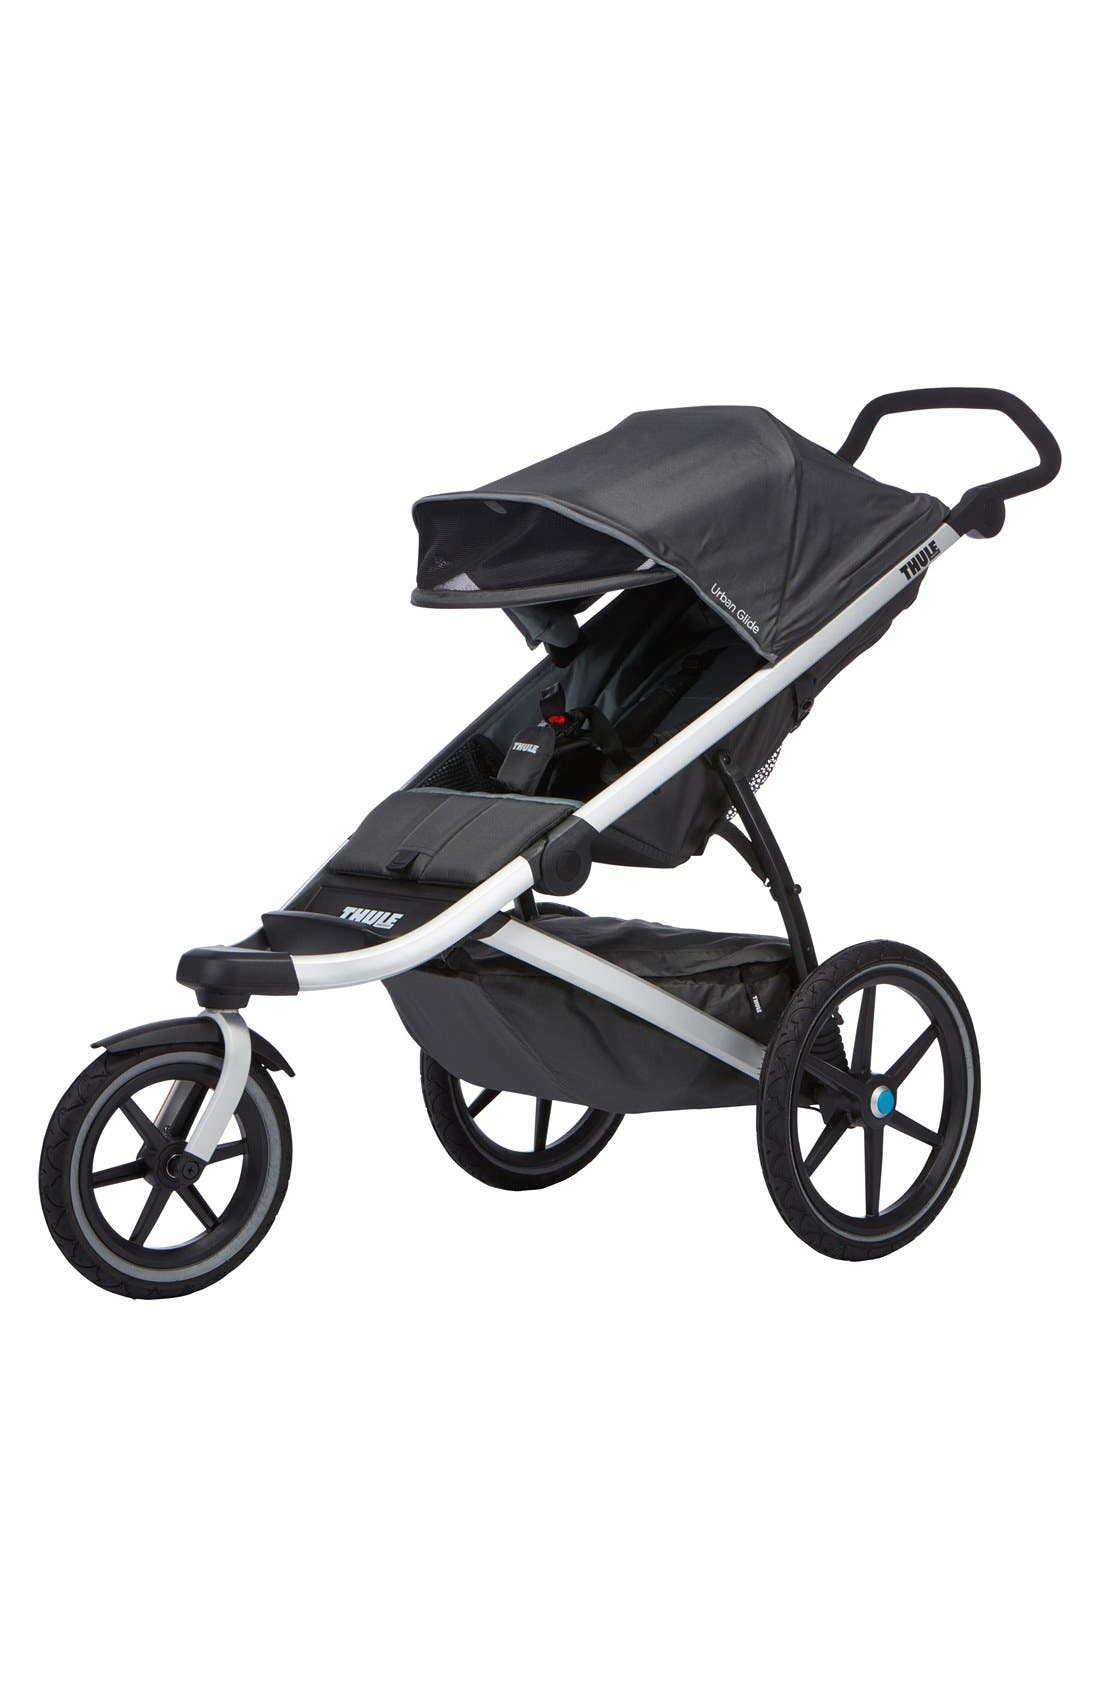 Thule 'Urban Glide' Jogging Stroller with Snack Tray